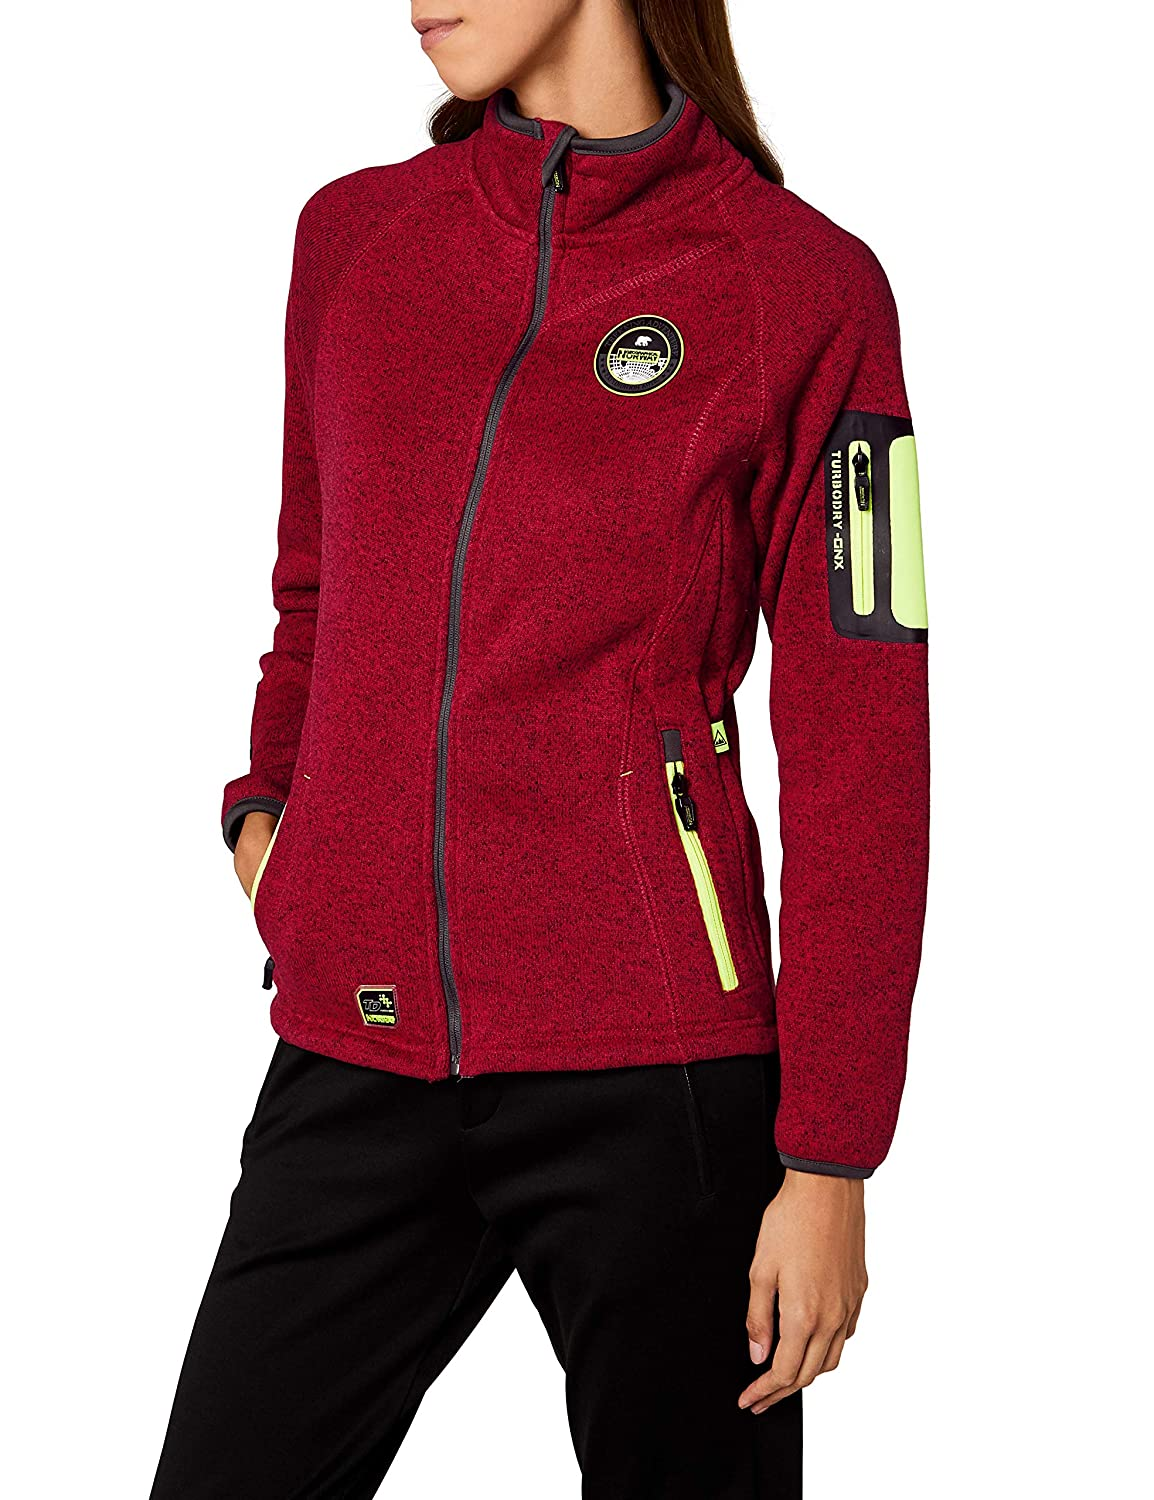 Geographical Norway Trapeze Lady Chaqueta para Mujer